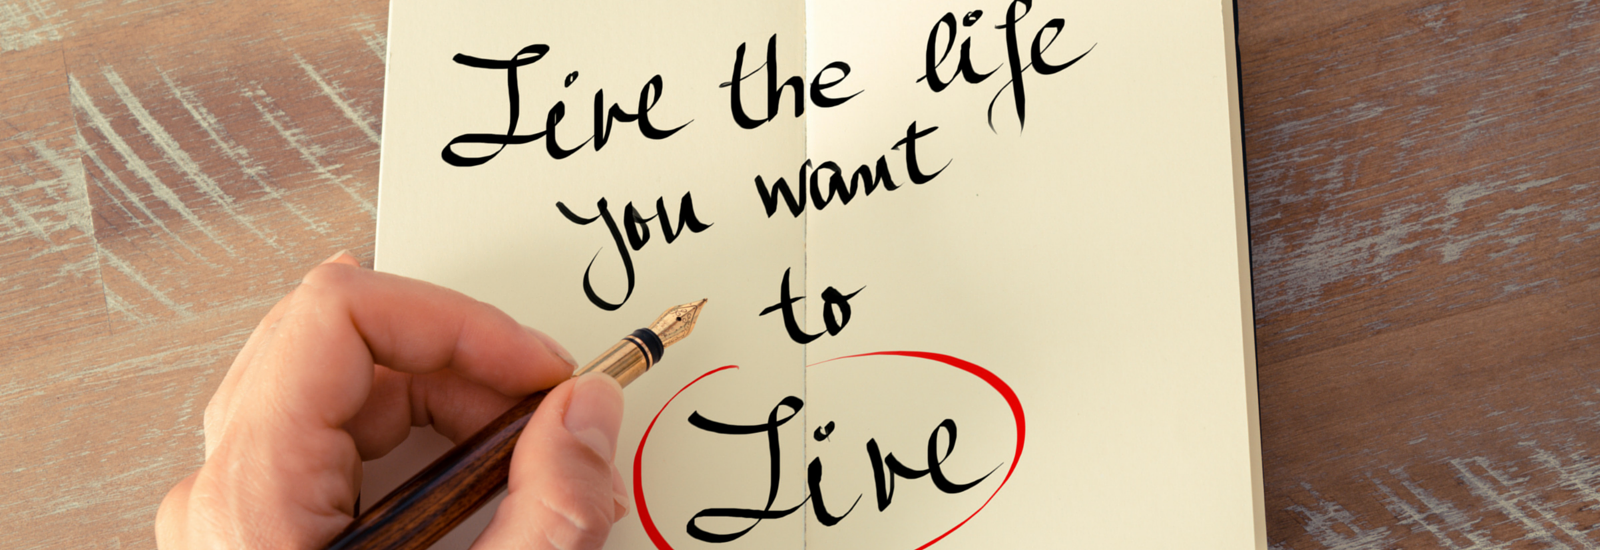 Live te life you want to live